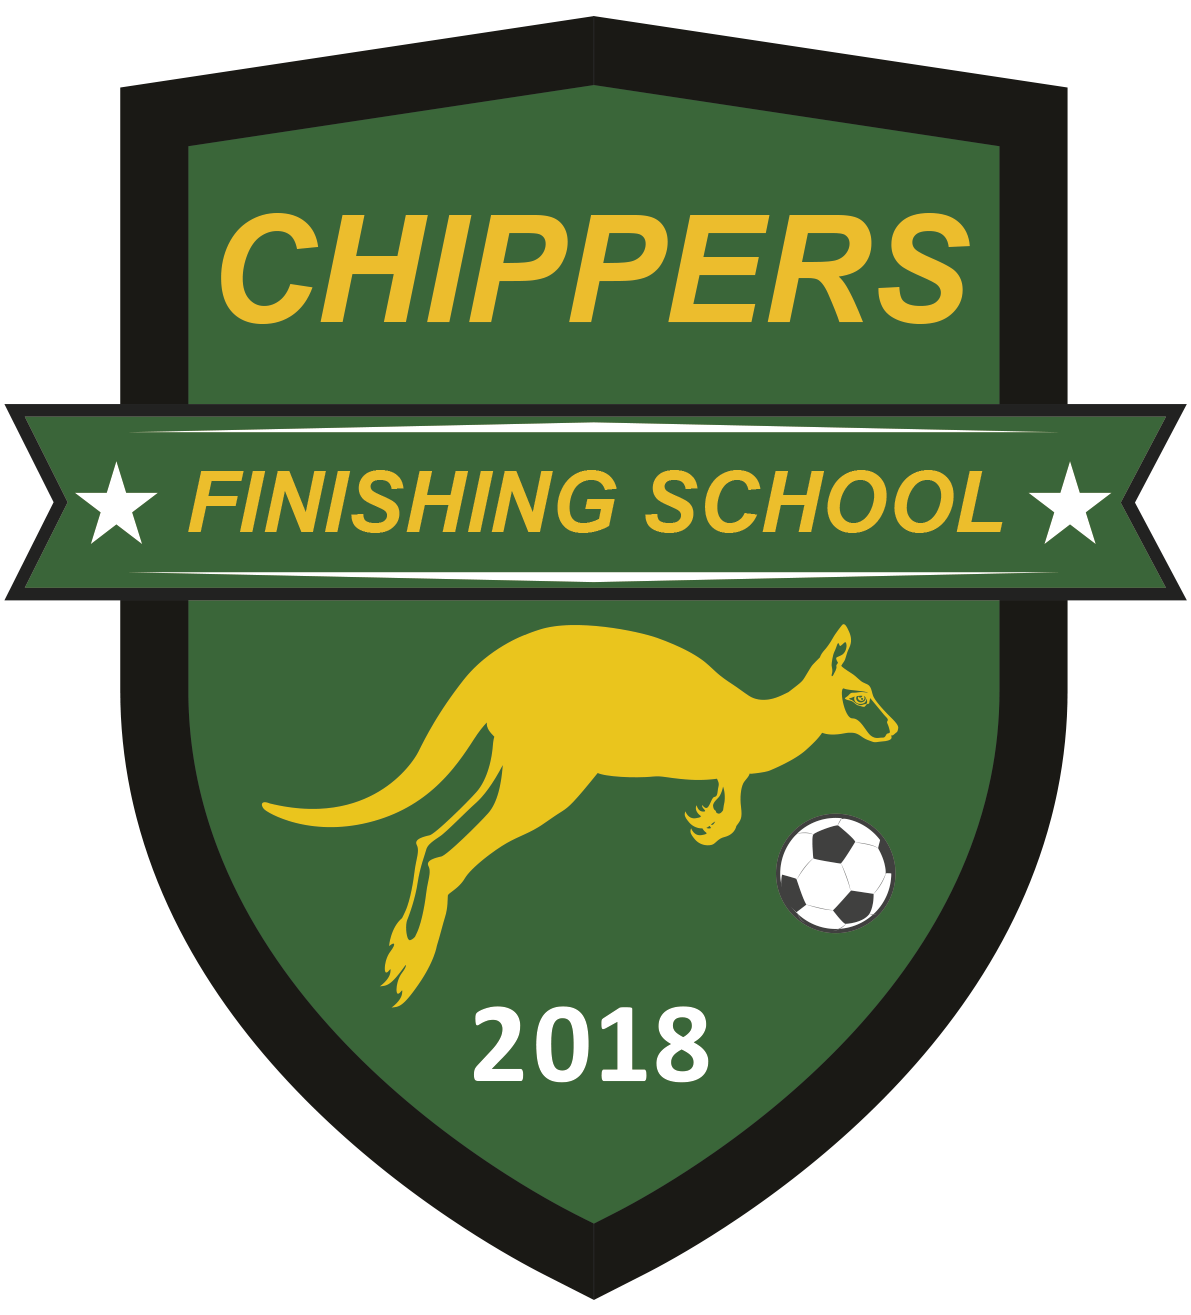 Chippers Finishing School